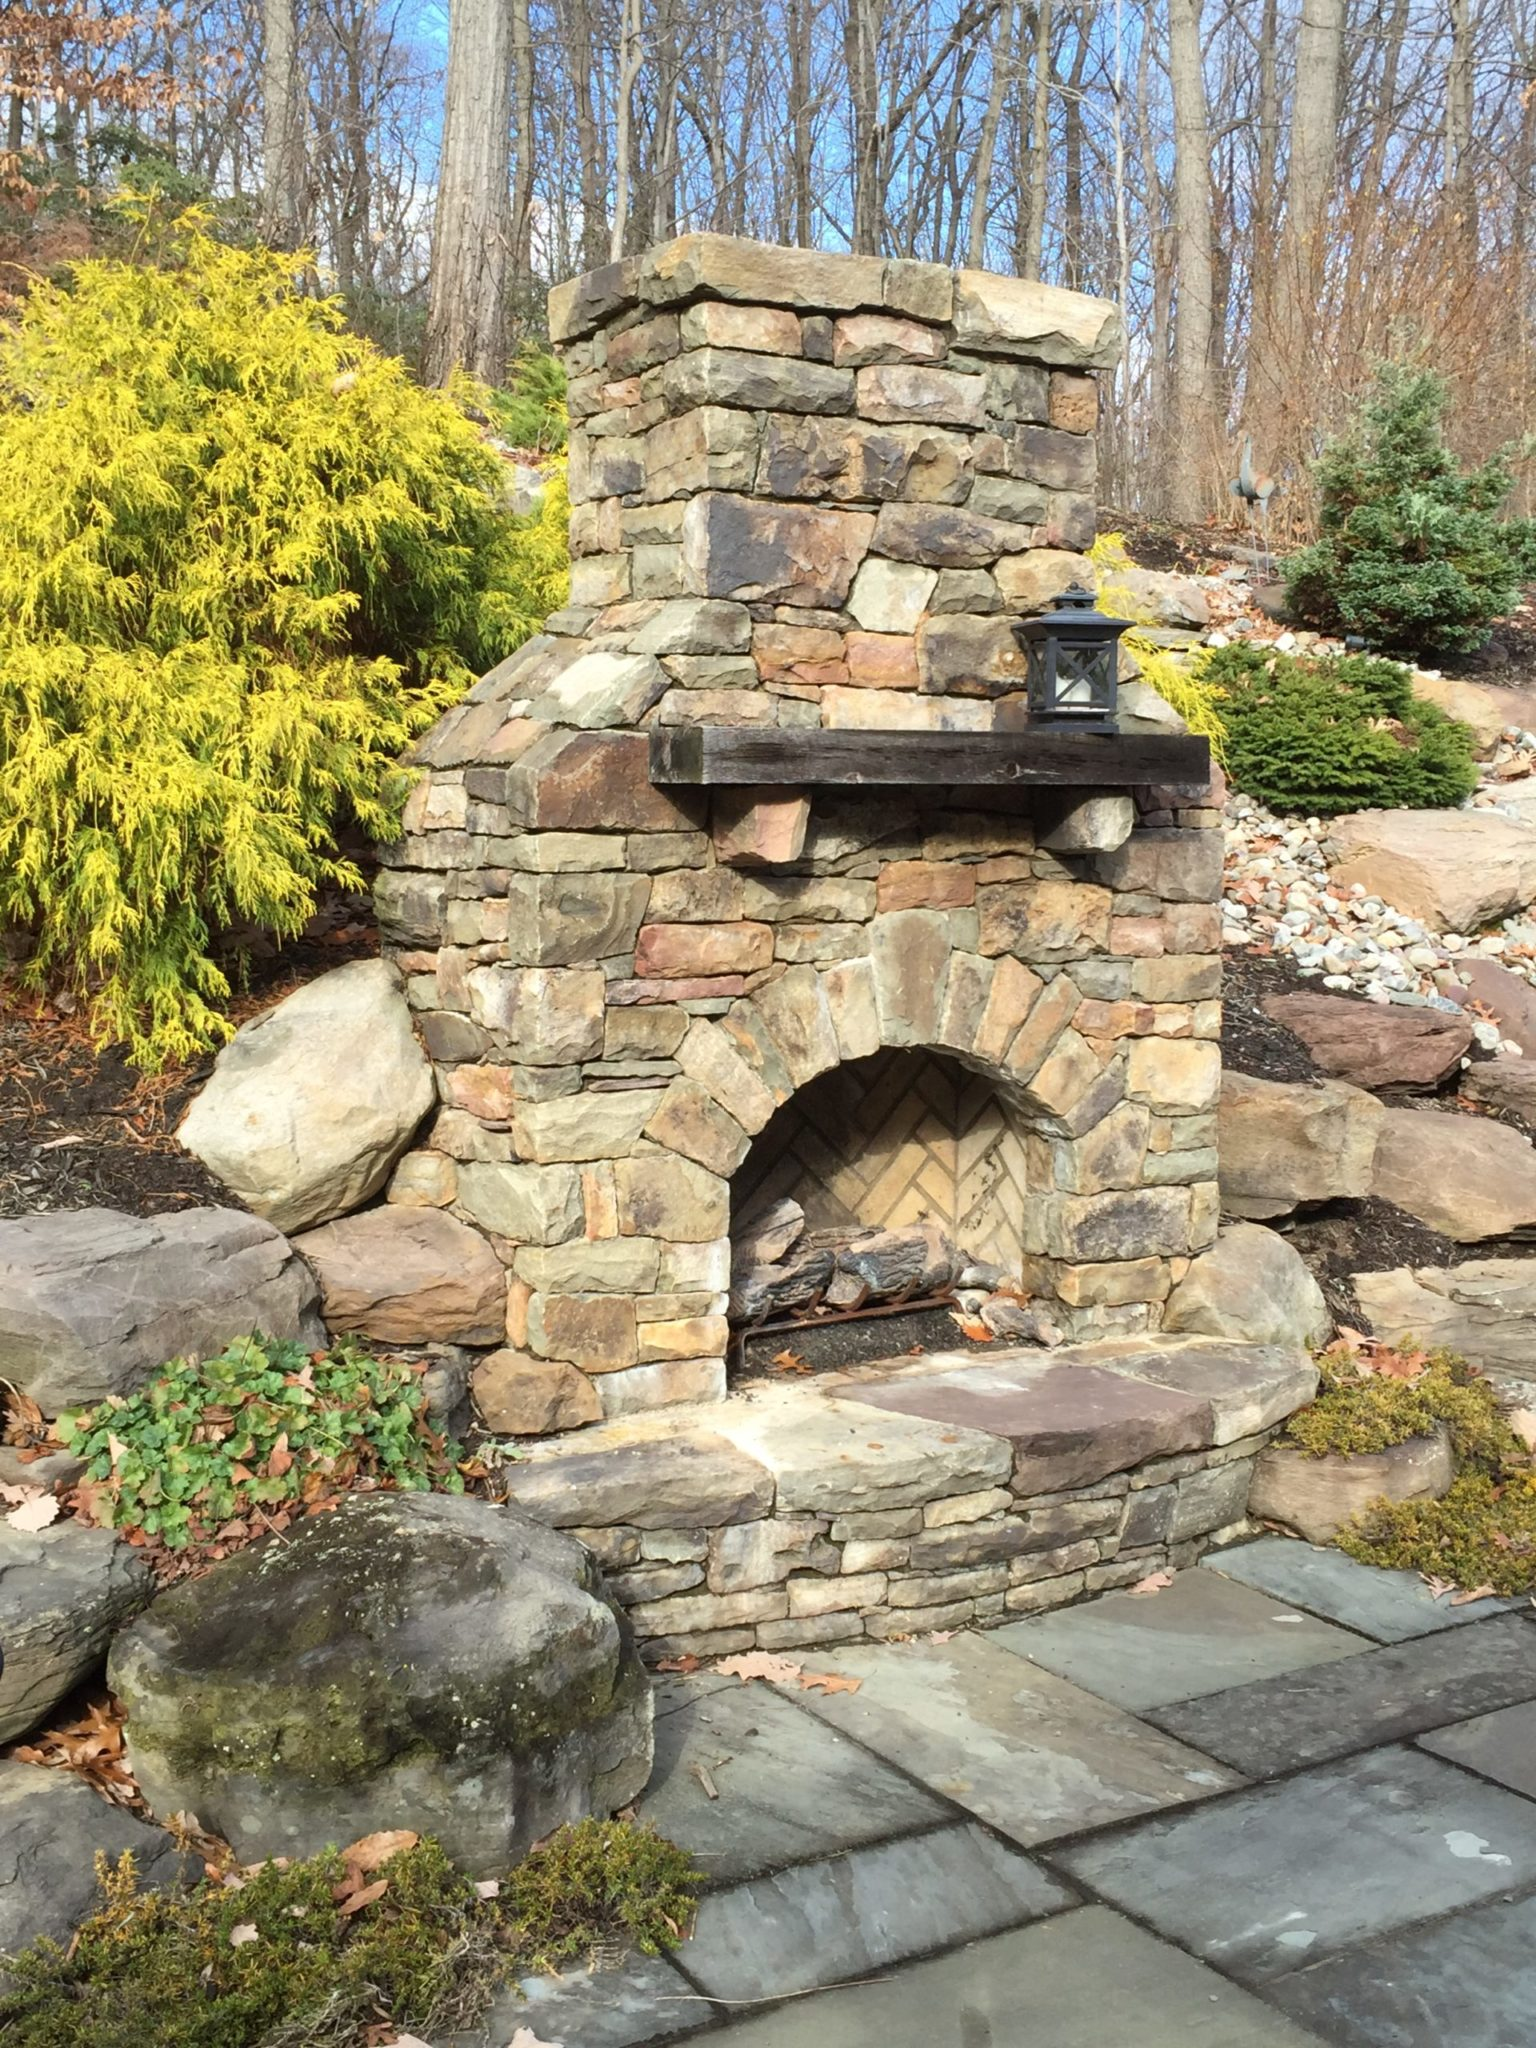 432 Stone Fireplace with Raised Stone Hearth Set Into Hillside